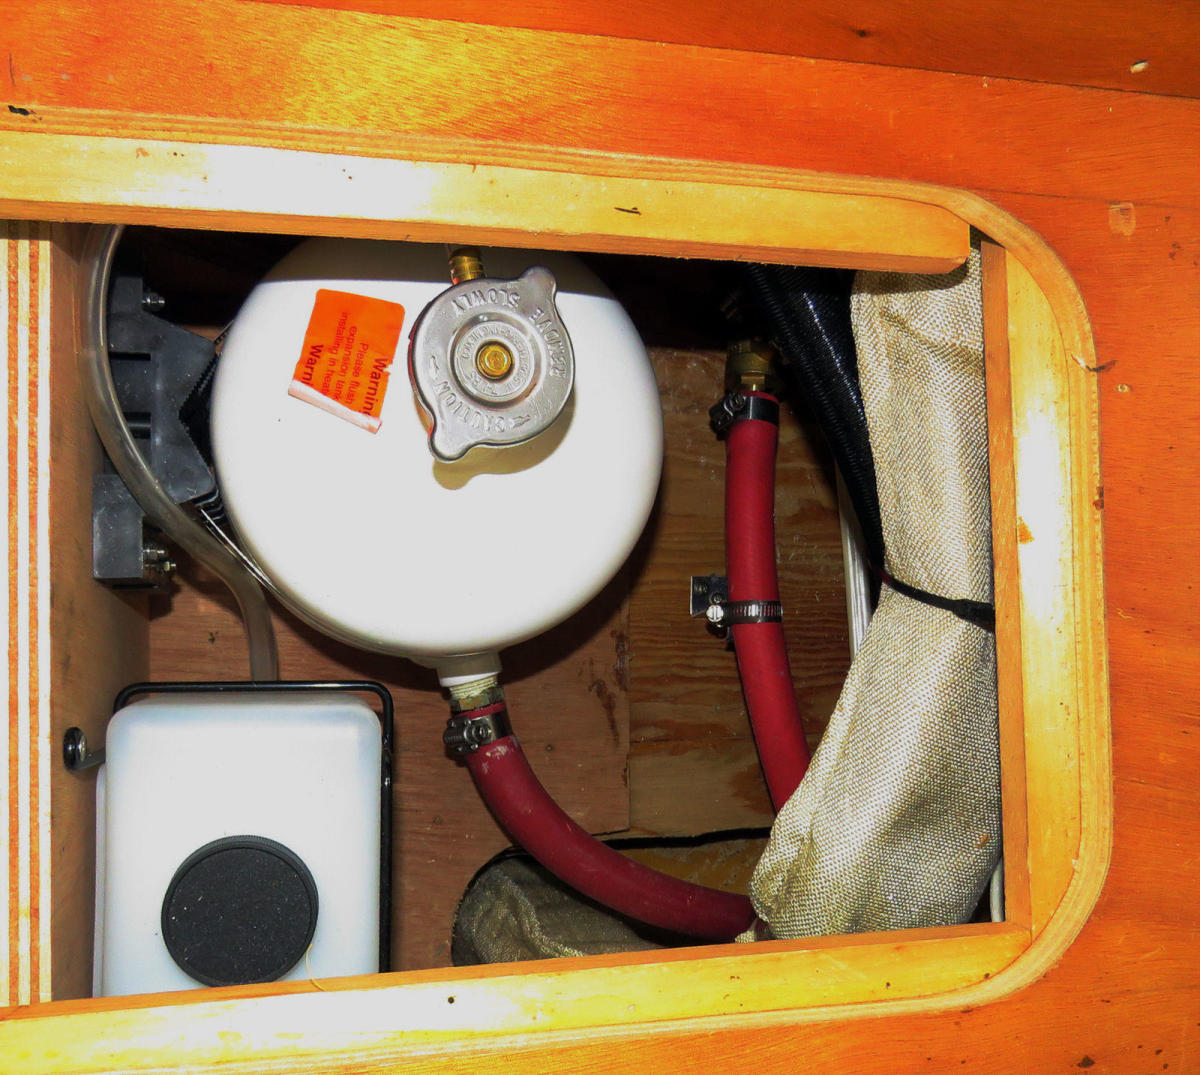 08-Gizmo_boiler_expansion_tank_area